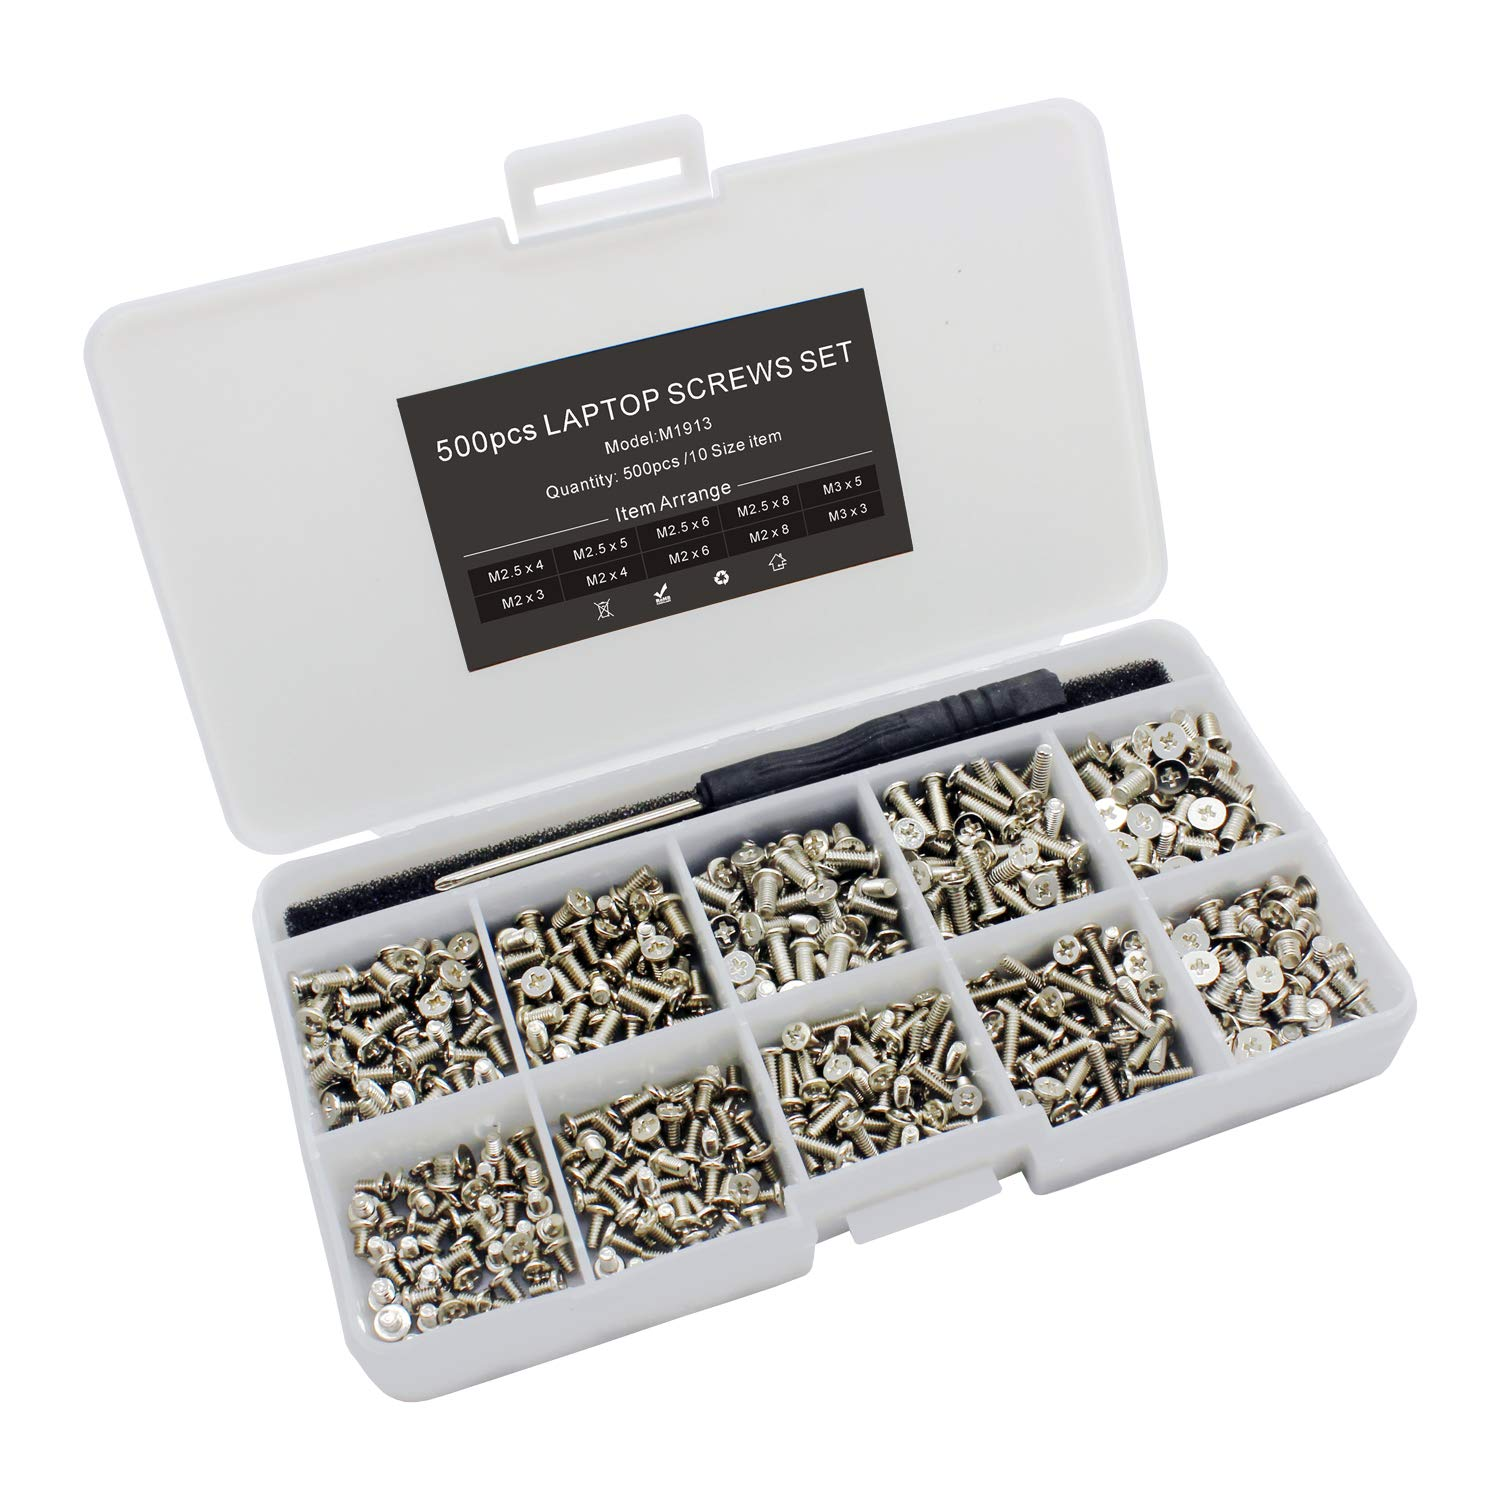 Mcsher 500pcs Laptop Notebook Screws Set for IBM HP Dell Lenovo Samsung Sony Toshiba Acer Gateway Screw Assortment Kit with Screwdriver - Silver